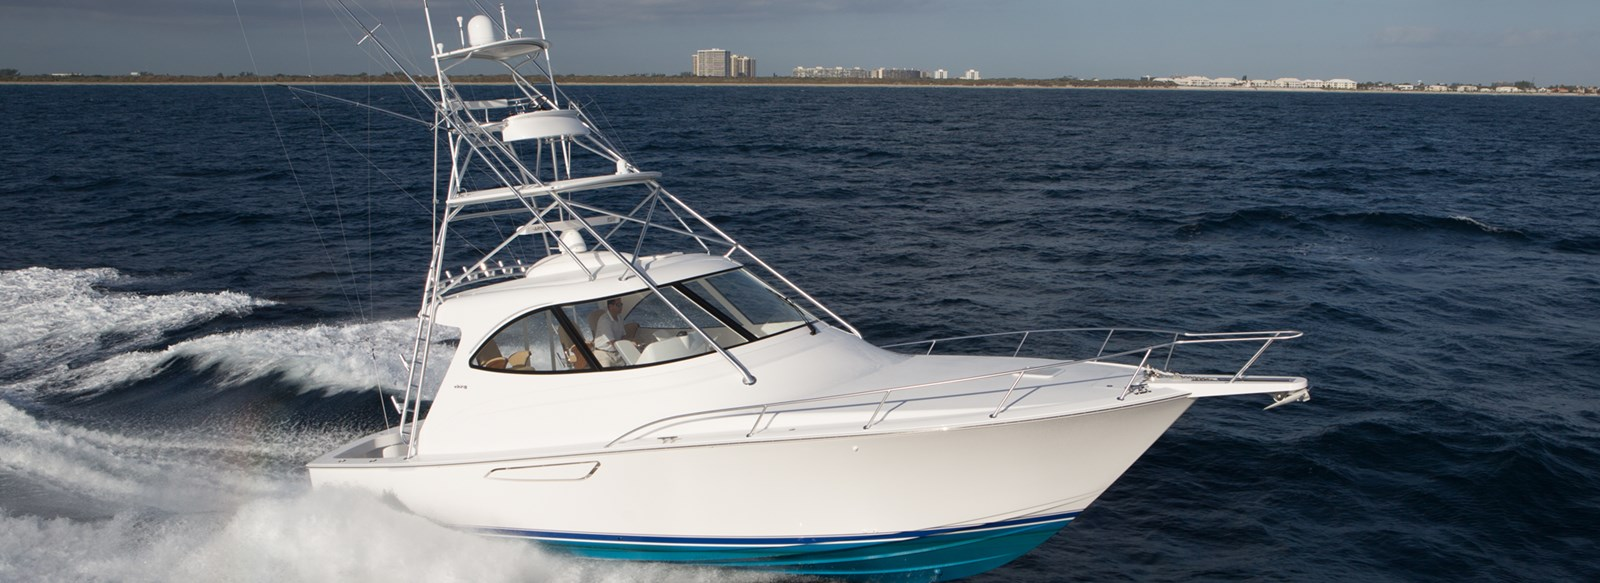 New Viking 42 Sport Tower Yachts For Sale